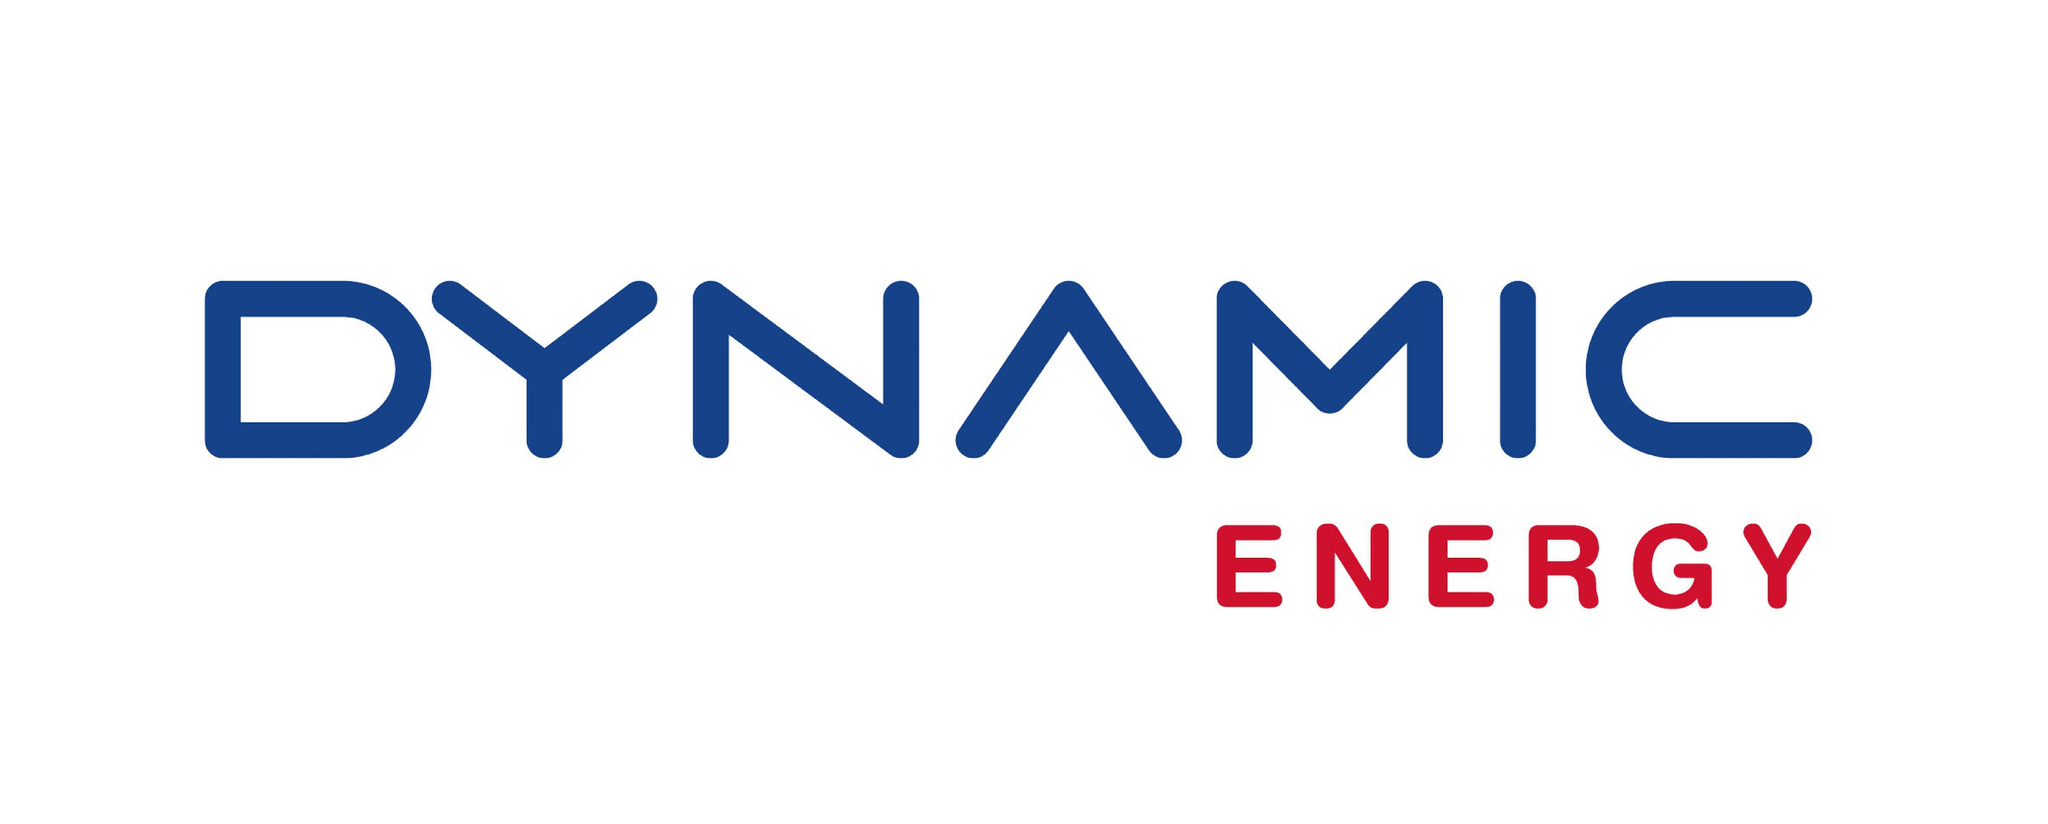 DYNAMIC ENERGY FOR OIL AND GAS SERVICES